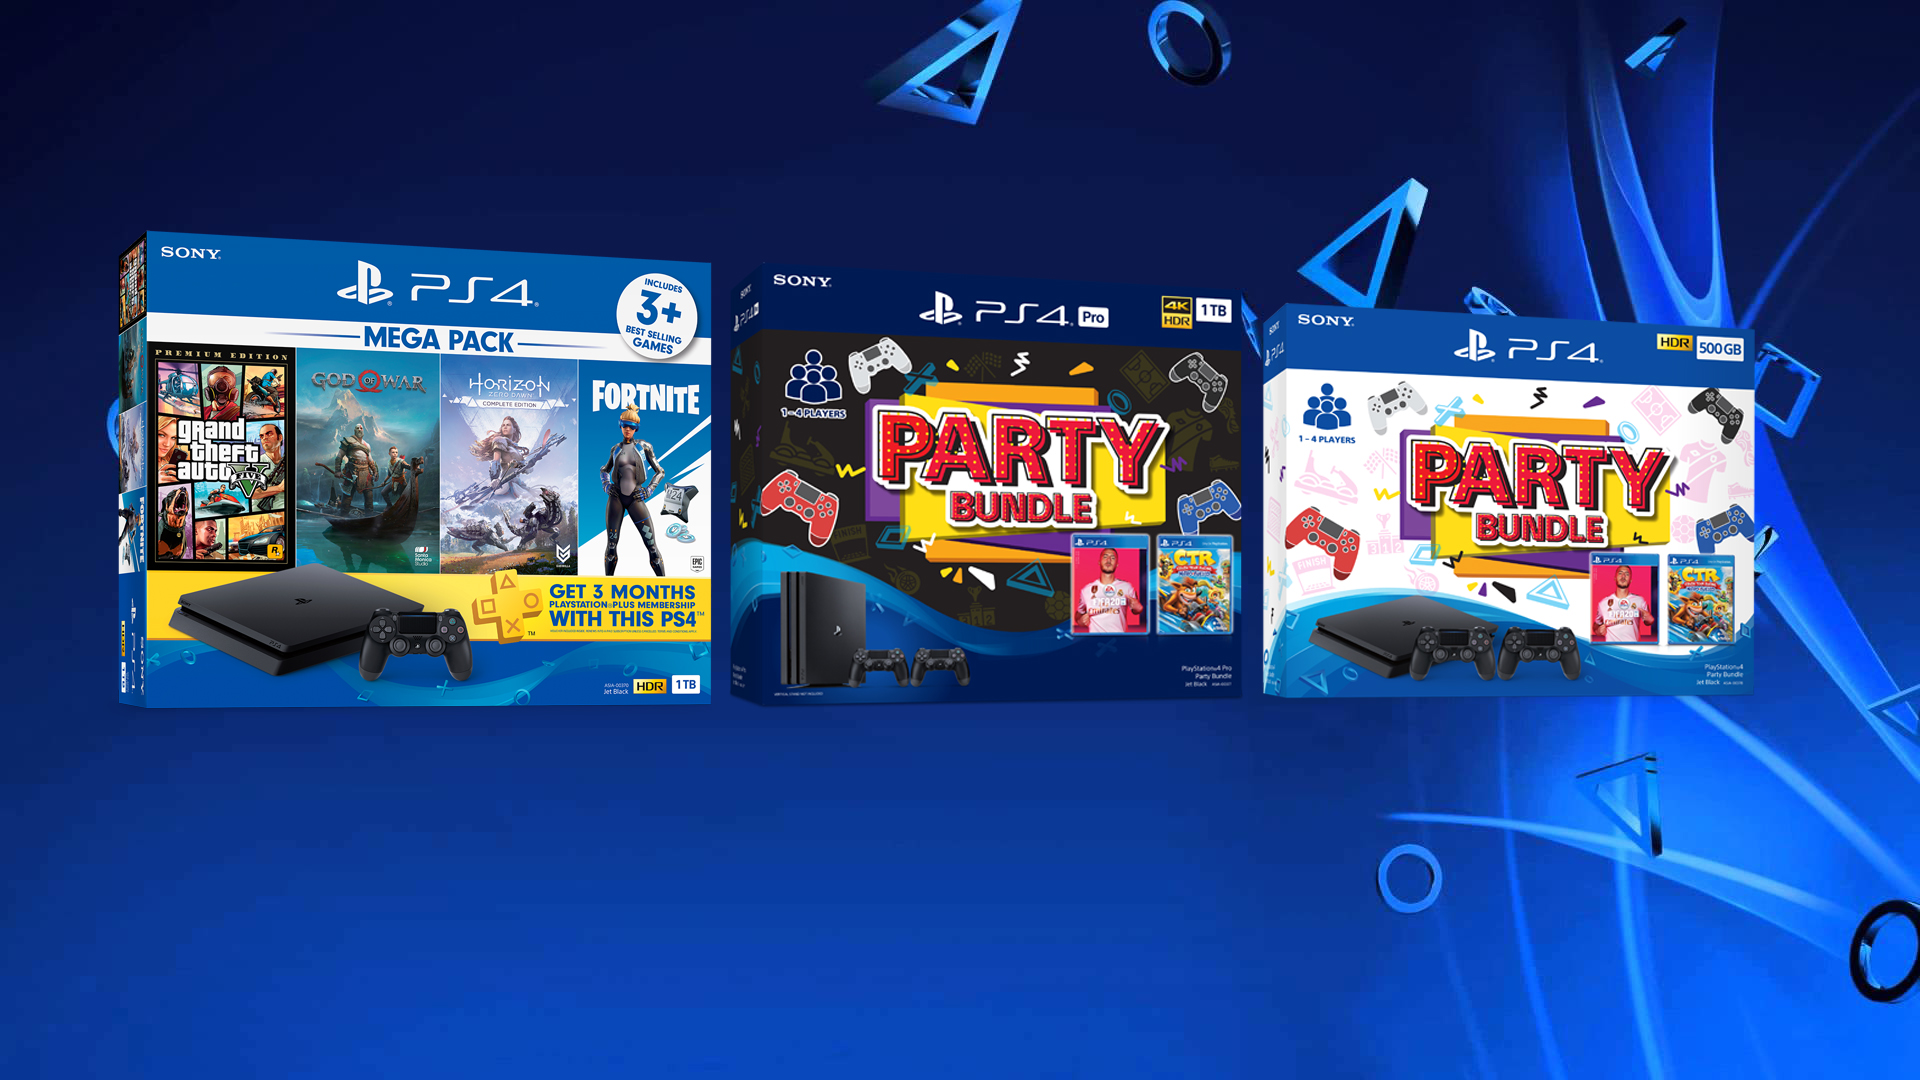 Playstation 4 to Get New Party Bundles and MEGA PACK 17